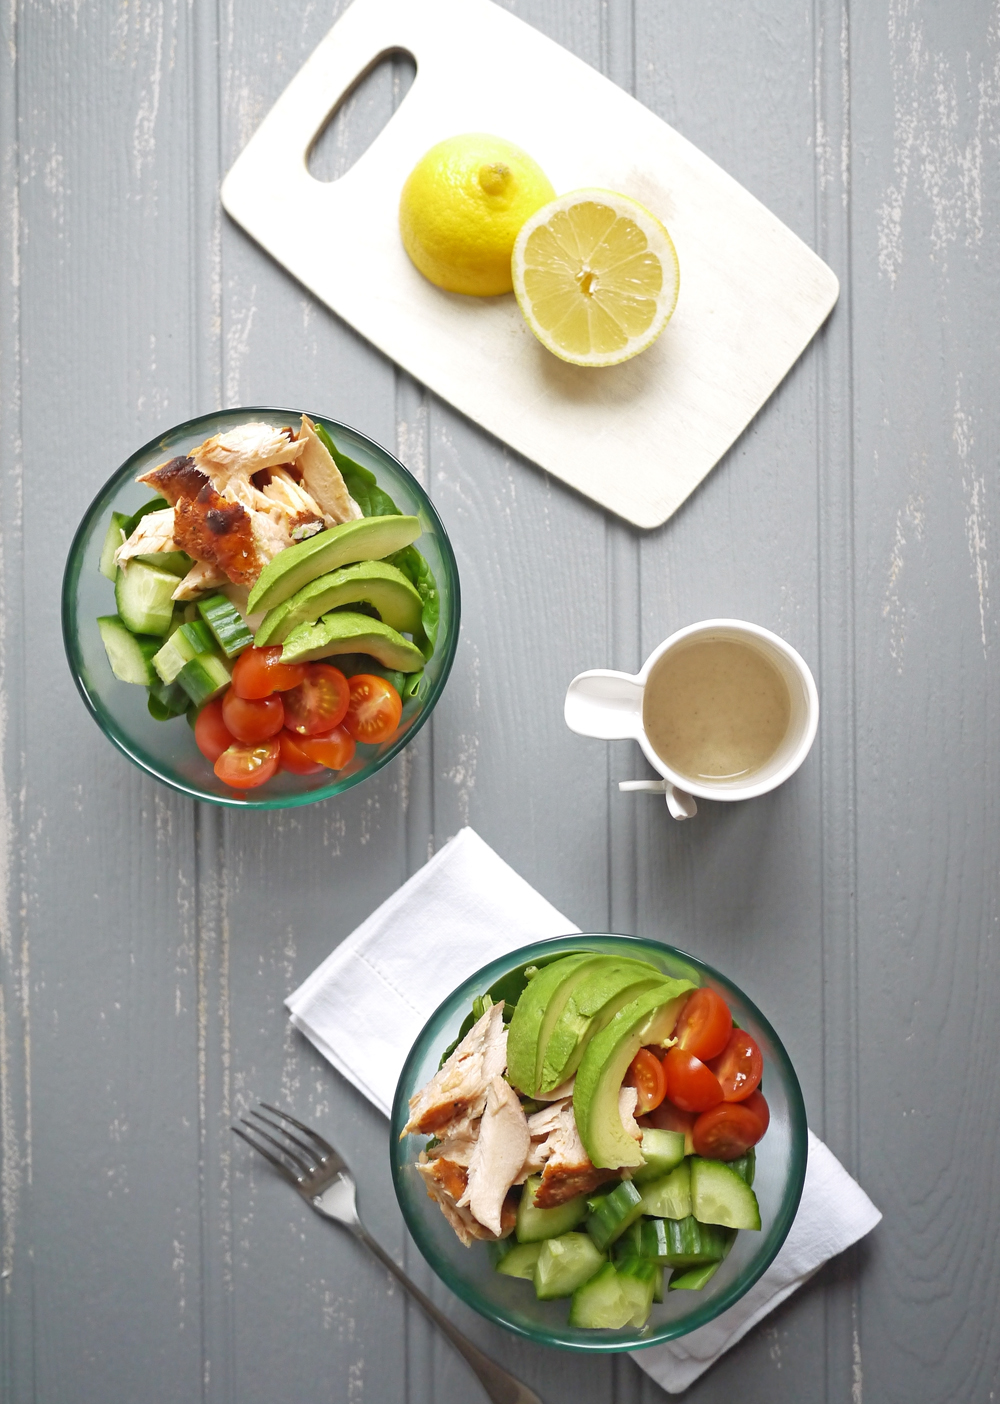 Salmon Salad with Lemon Tahini Dressing Overhead